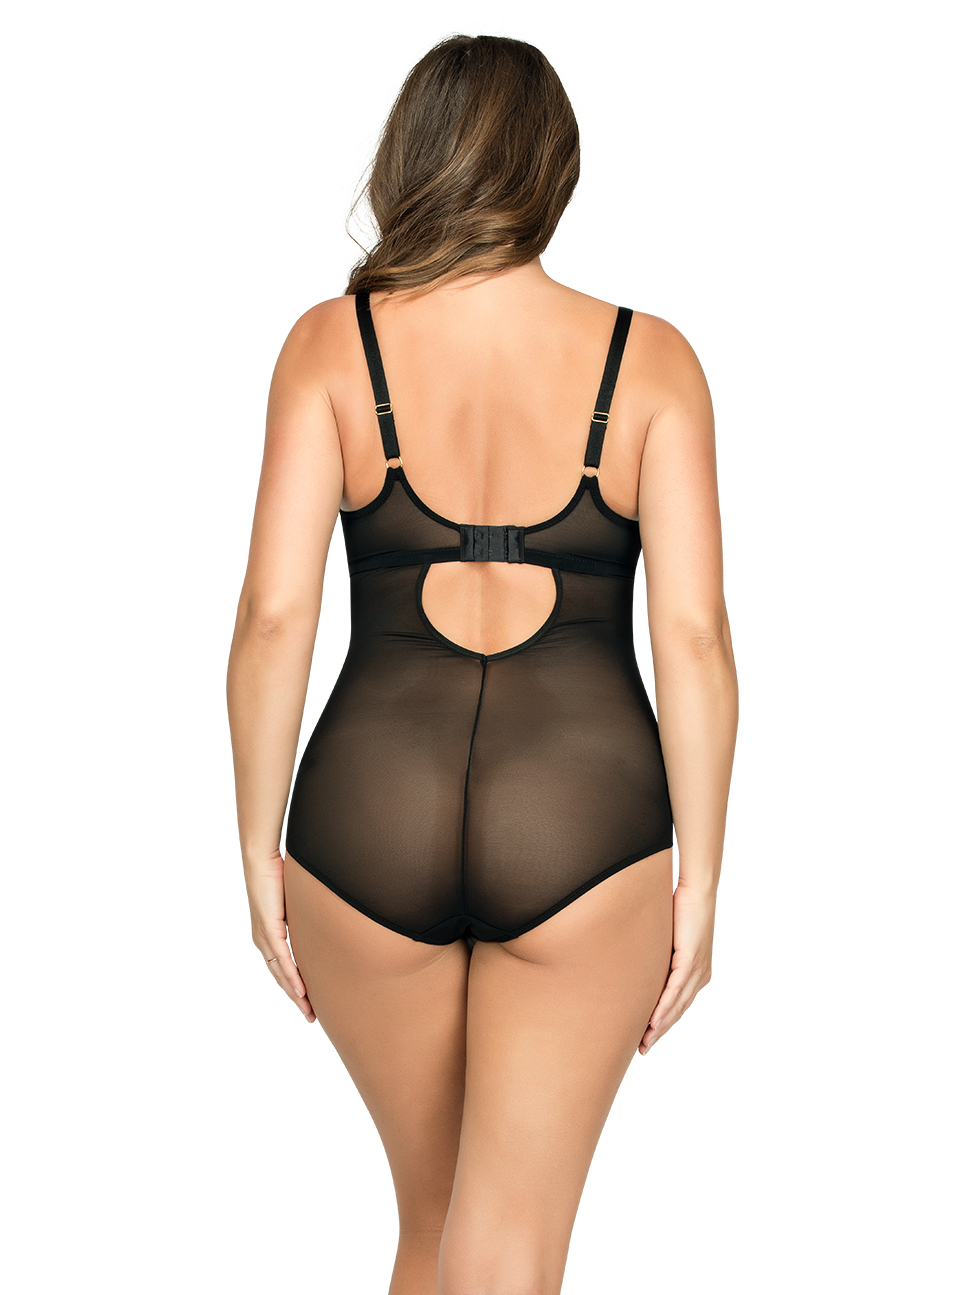 PARFAIT Briana WiredBodysuitP5677 BlackFloral Back - Briana Wired Bodysuit Black Floral P5677